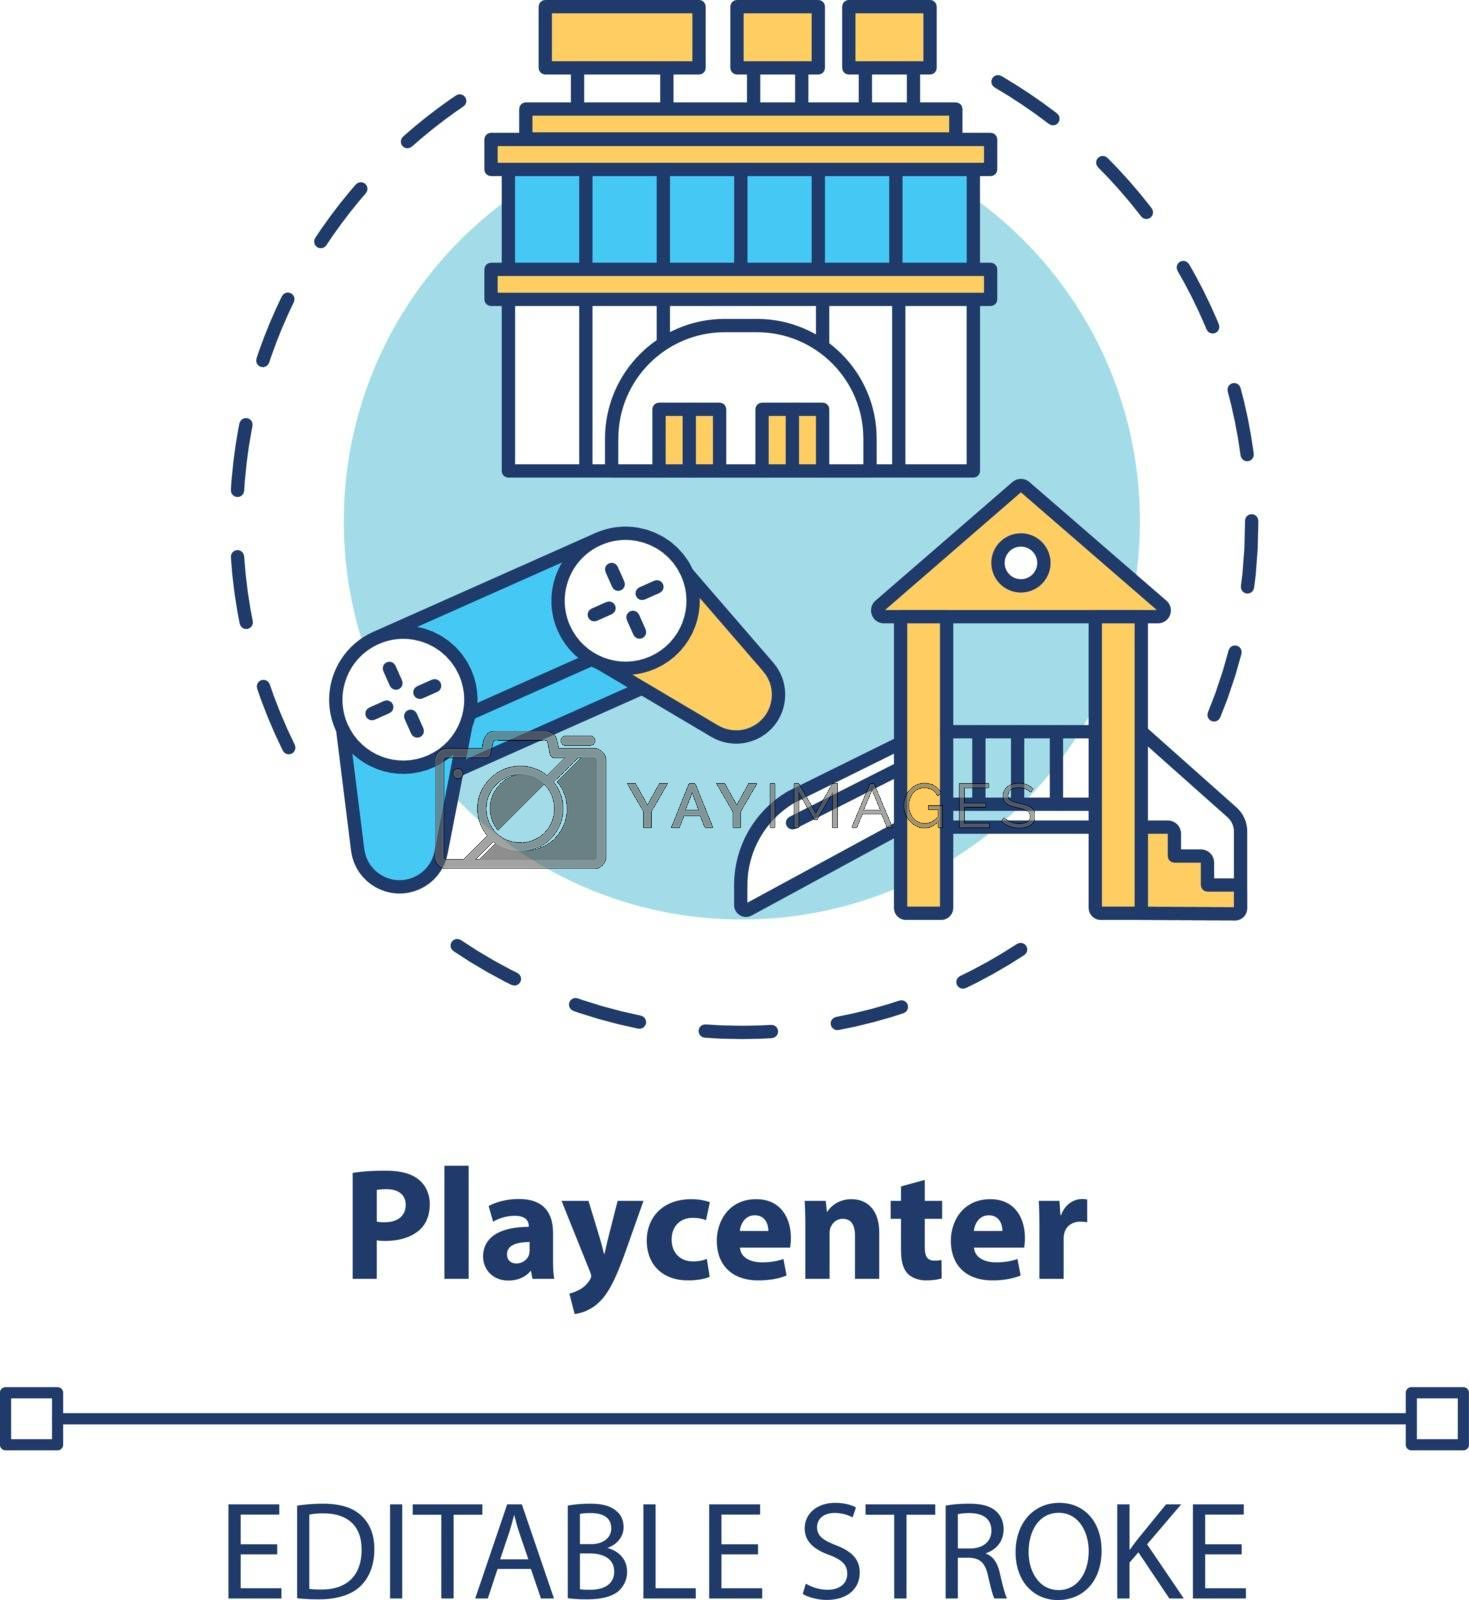 Playcenter concept icon by bsd